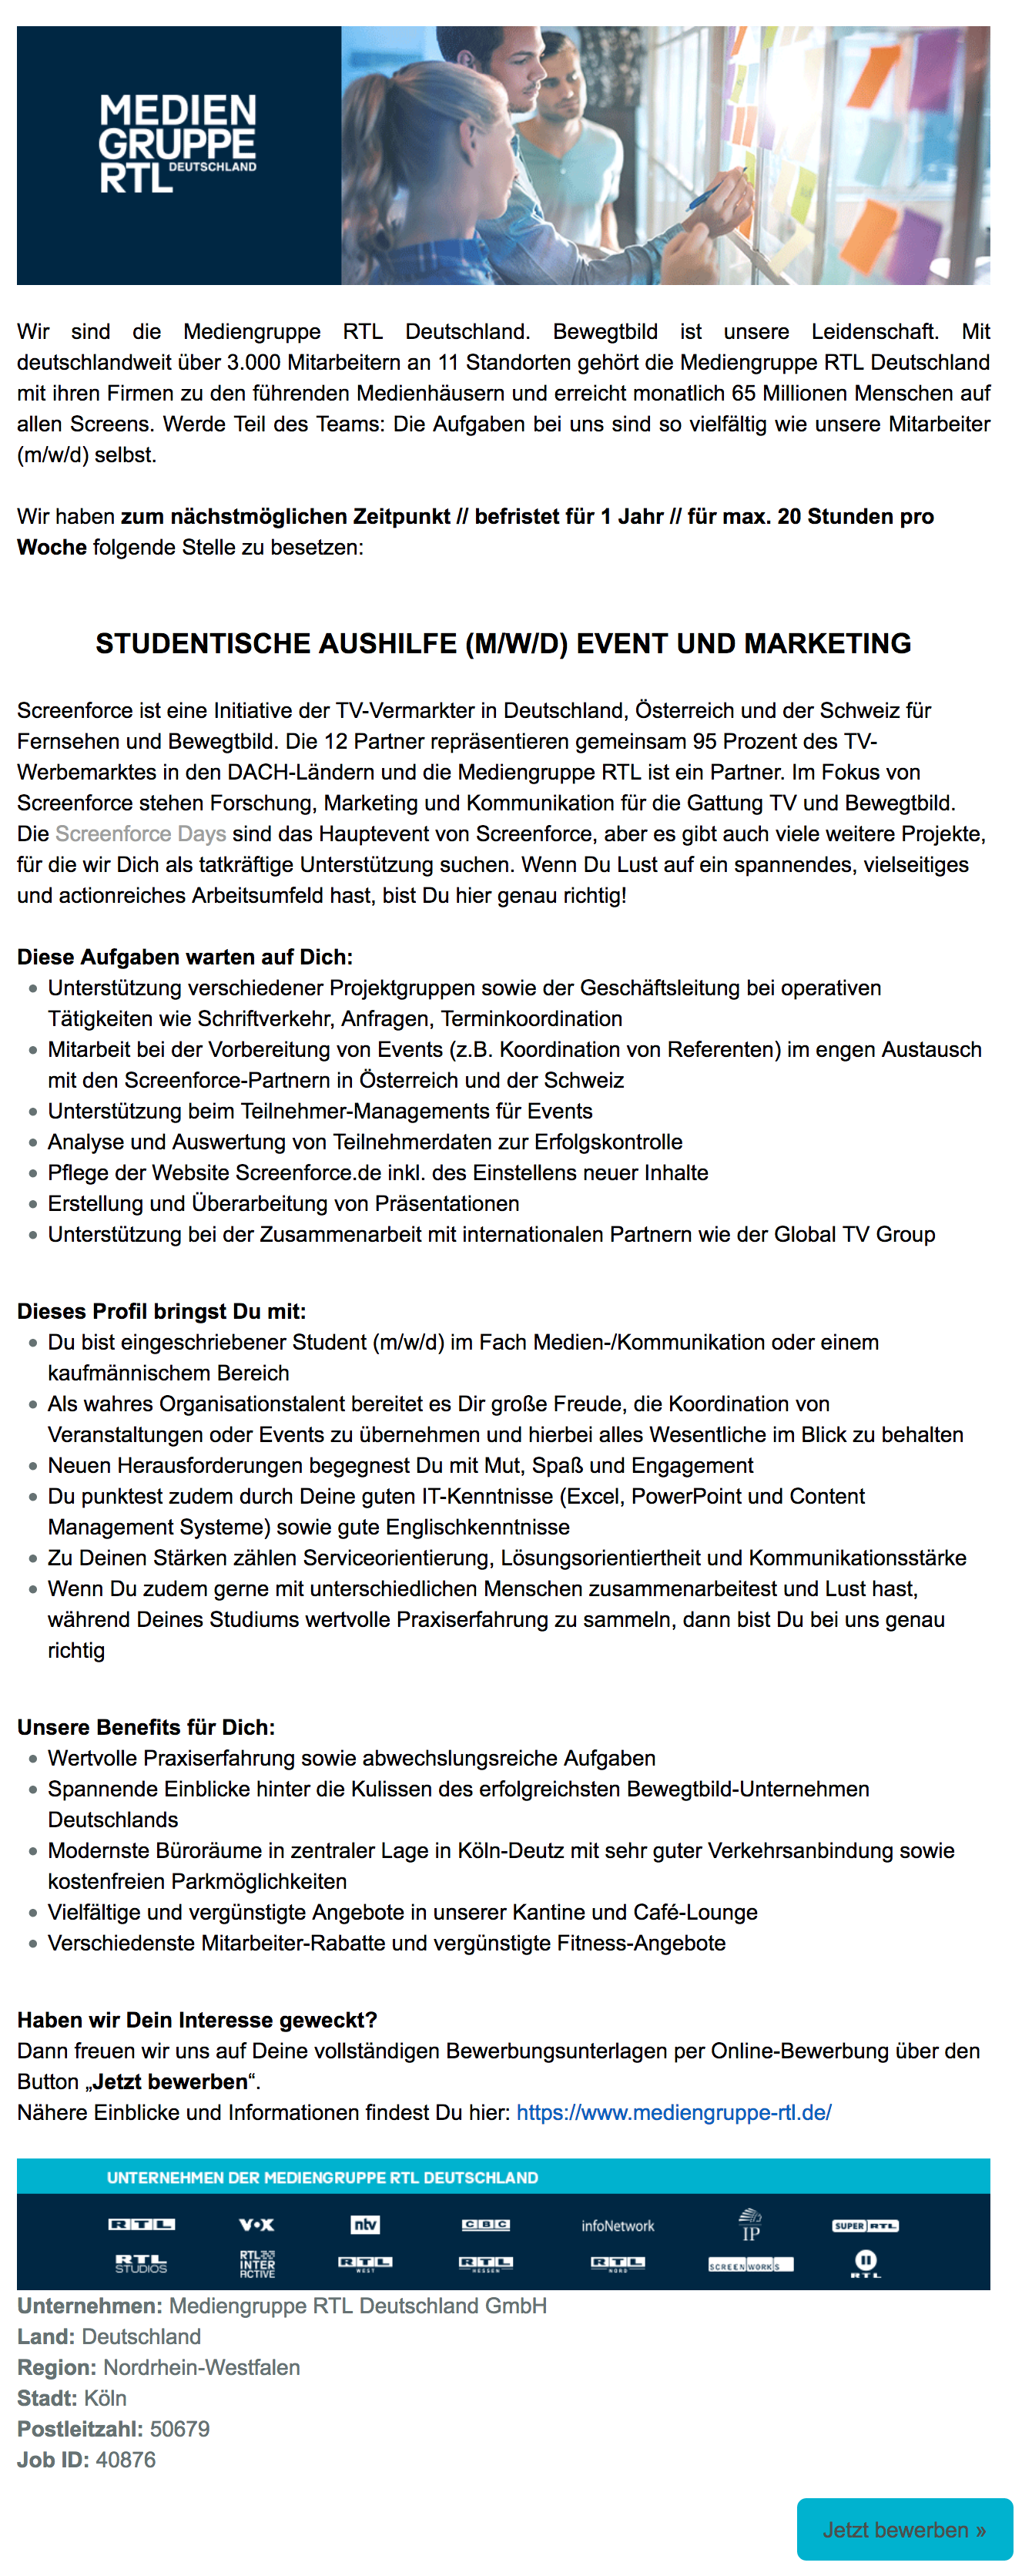 Studentische Aushilfe (m/w/d) Event und Marketing